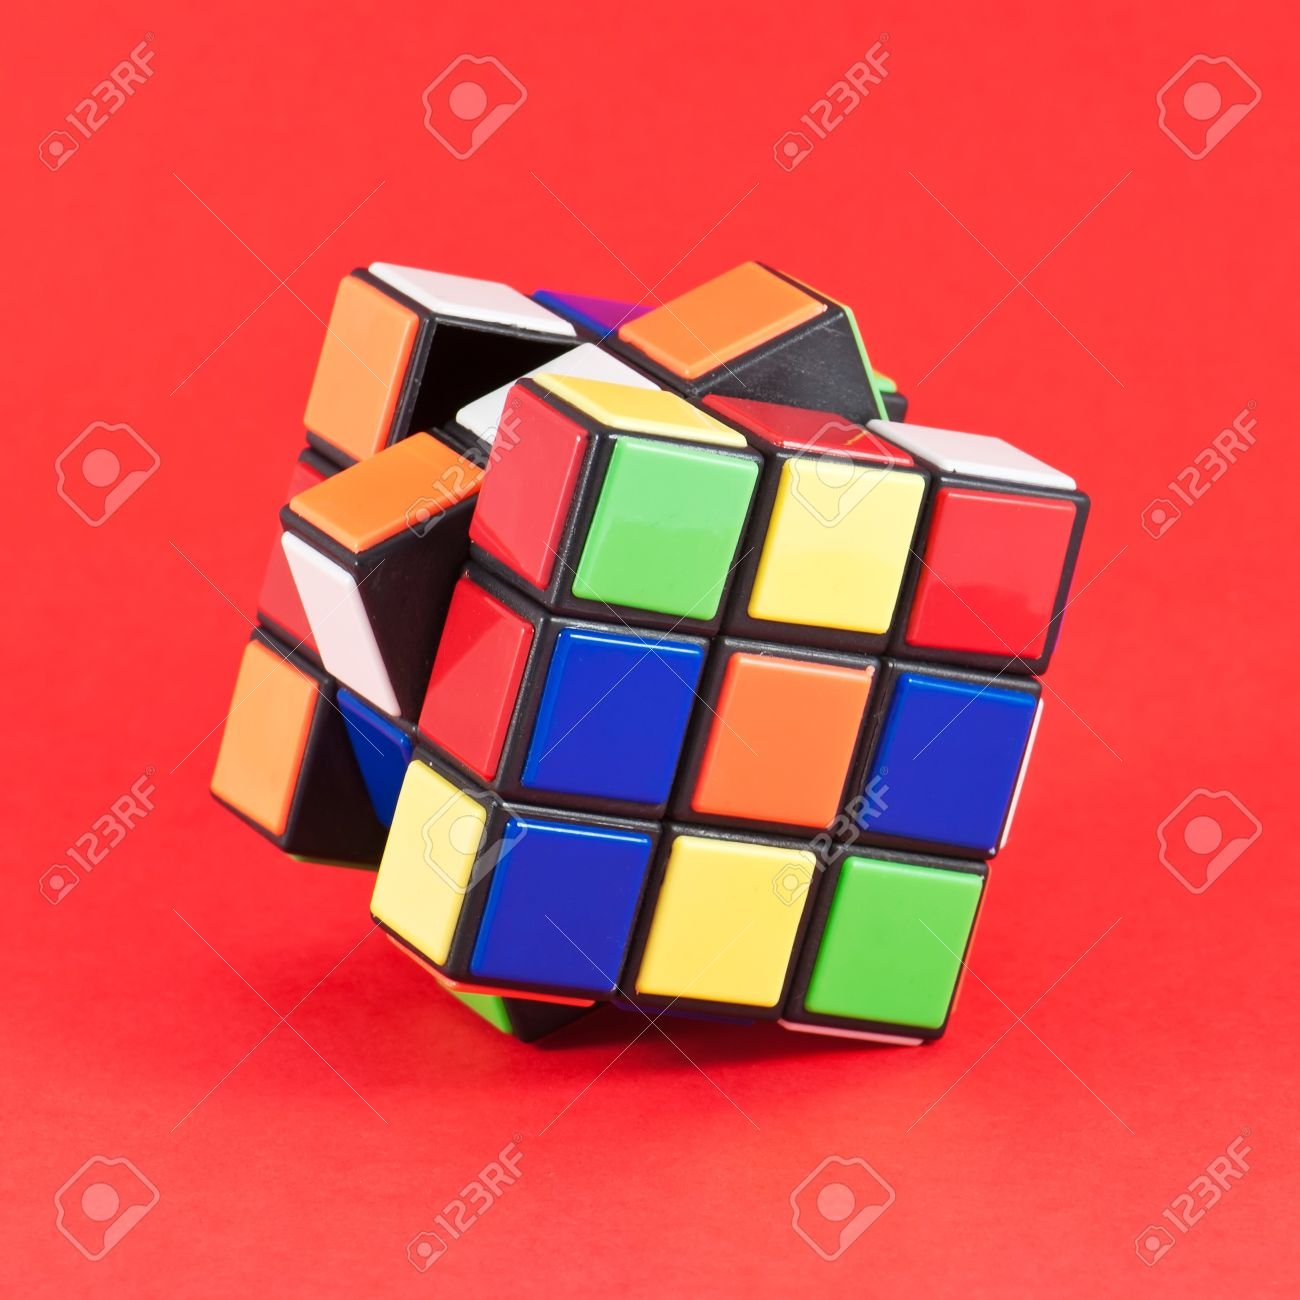 In a classic Rubik's Cube, each of the six faces is covered by 9 stickers, among six solid colours (traditionally white, red, blue, orange, green, and yellow) Stock Photo - 12279937